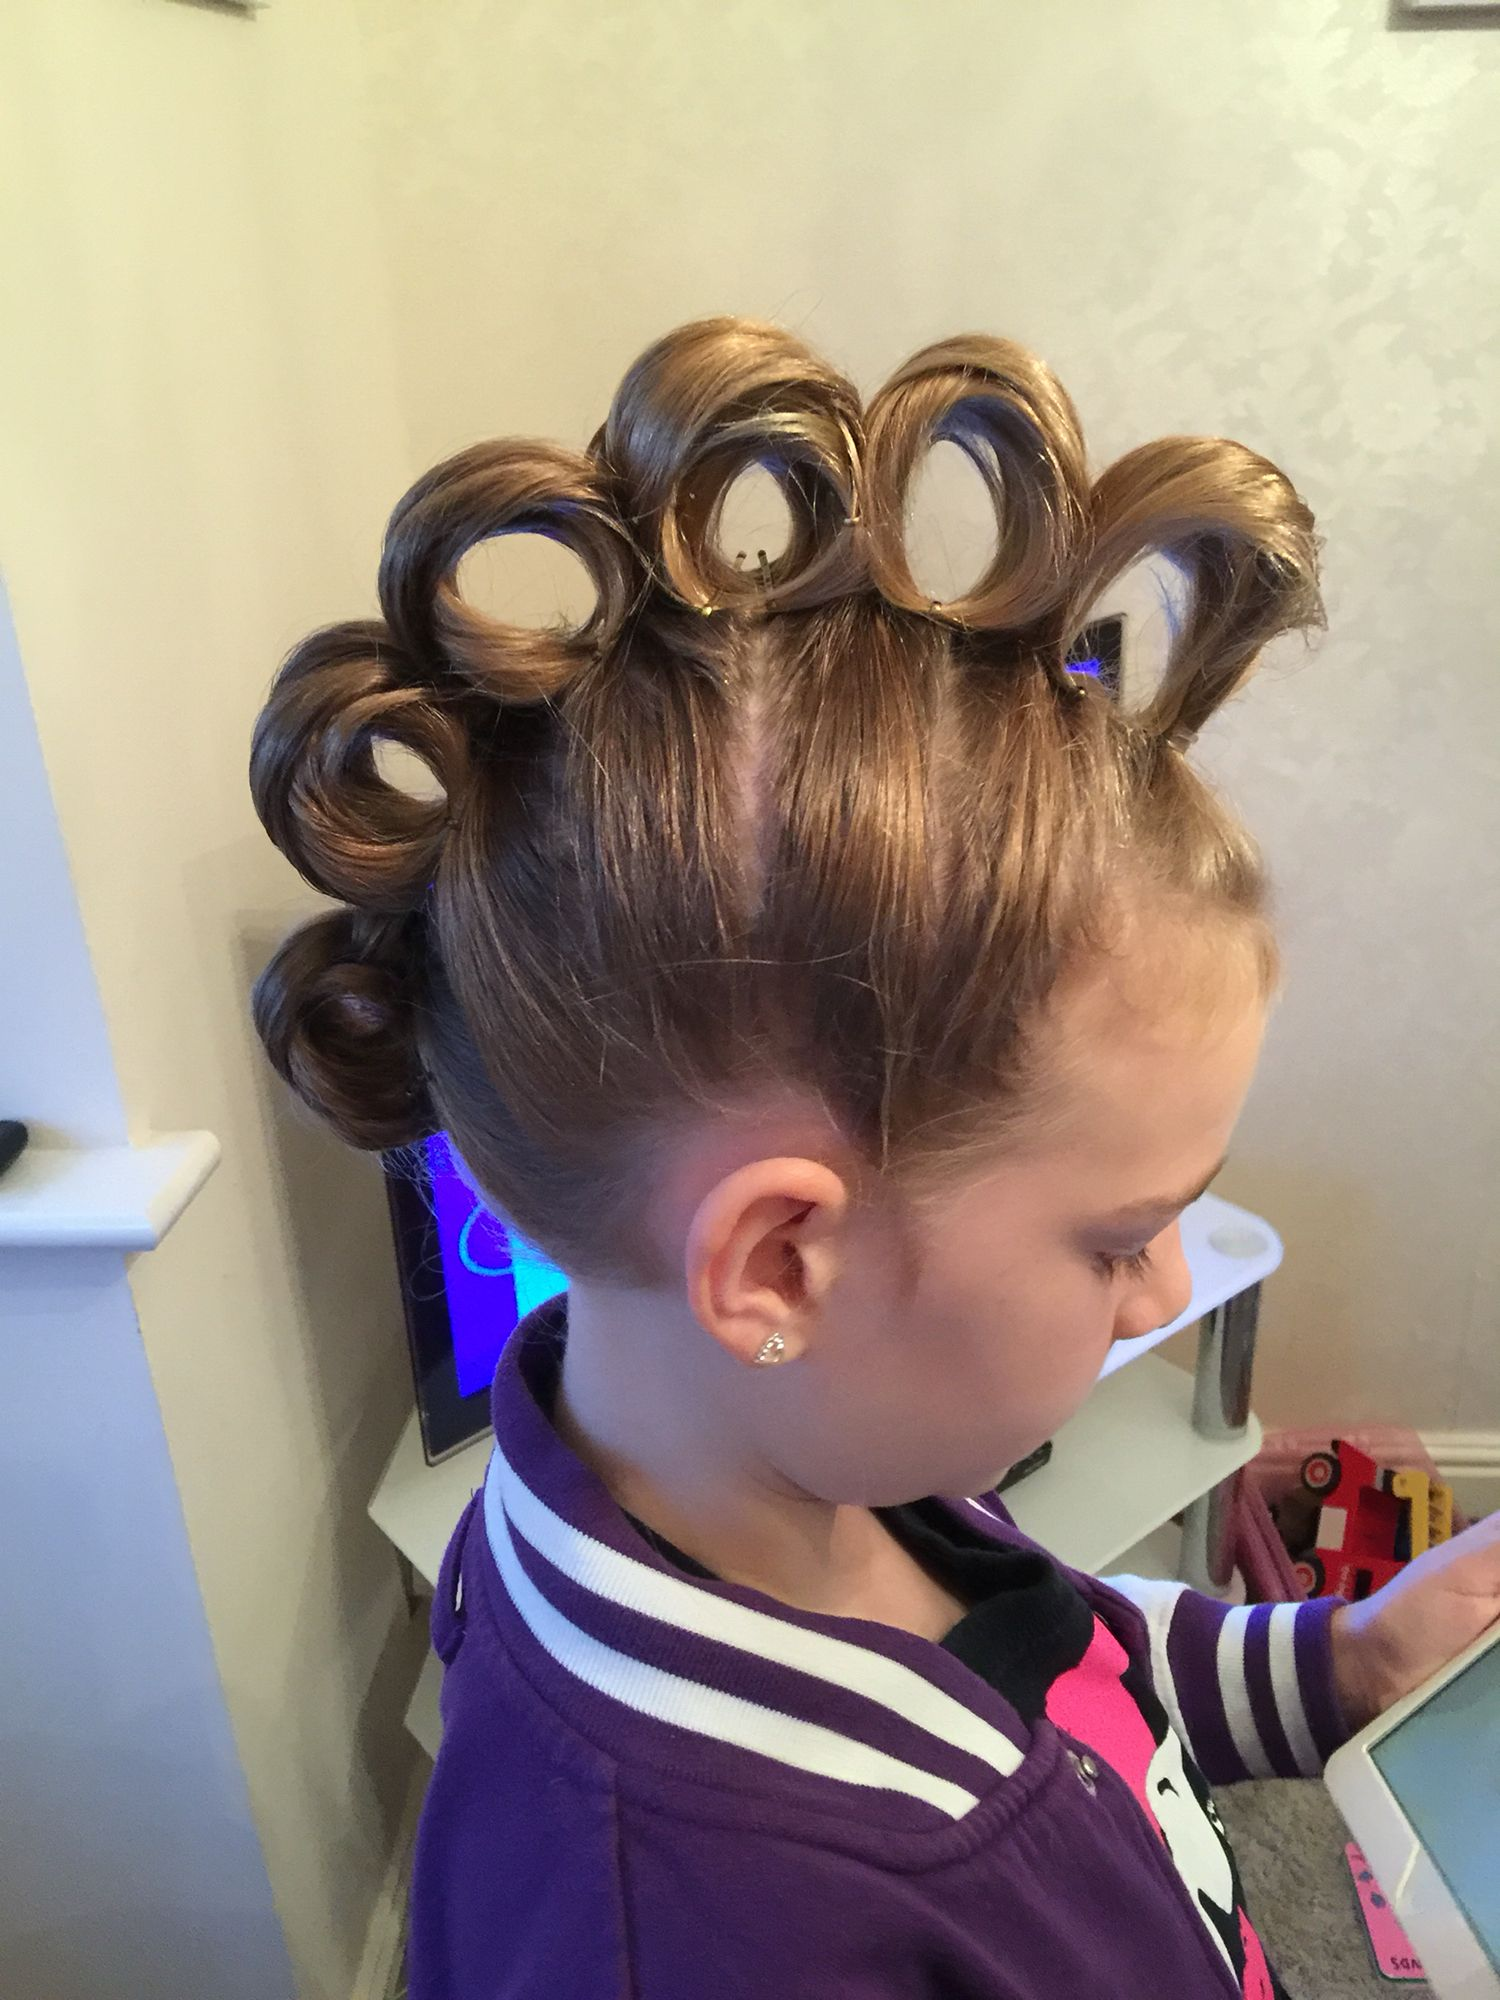 18 crazy hair day ideas for girls & boys | crazy hair, pony hair